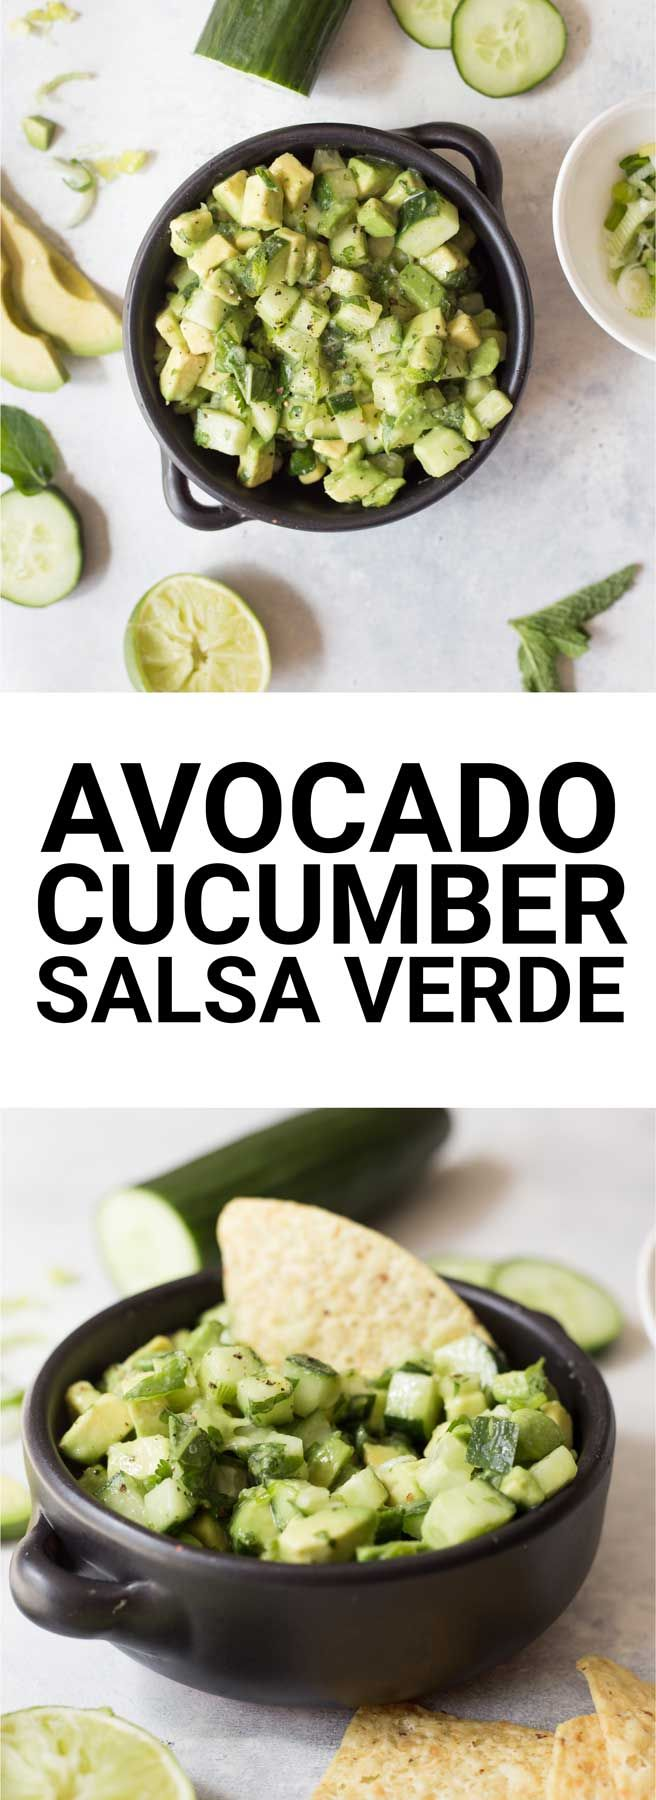 Avocado Cucumber Salsa Verde: An easy, fresh, and raw salsa verde made without tomatillos! Made with summery ingredients like mint, cilantro, avocado, cucumber, and lime! || fooduzzi.com recipe